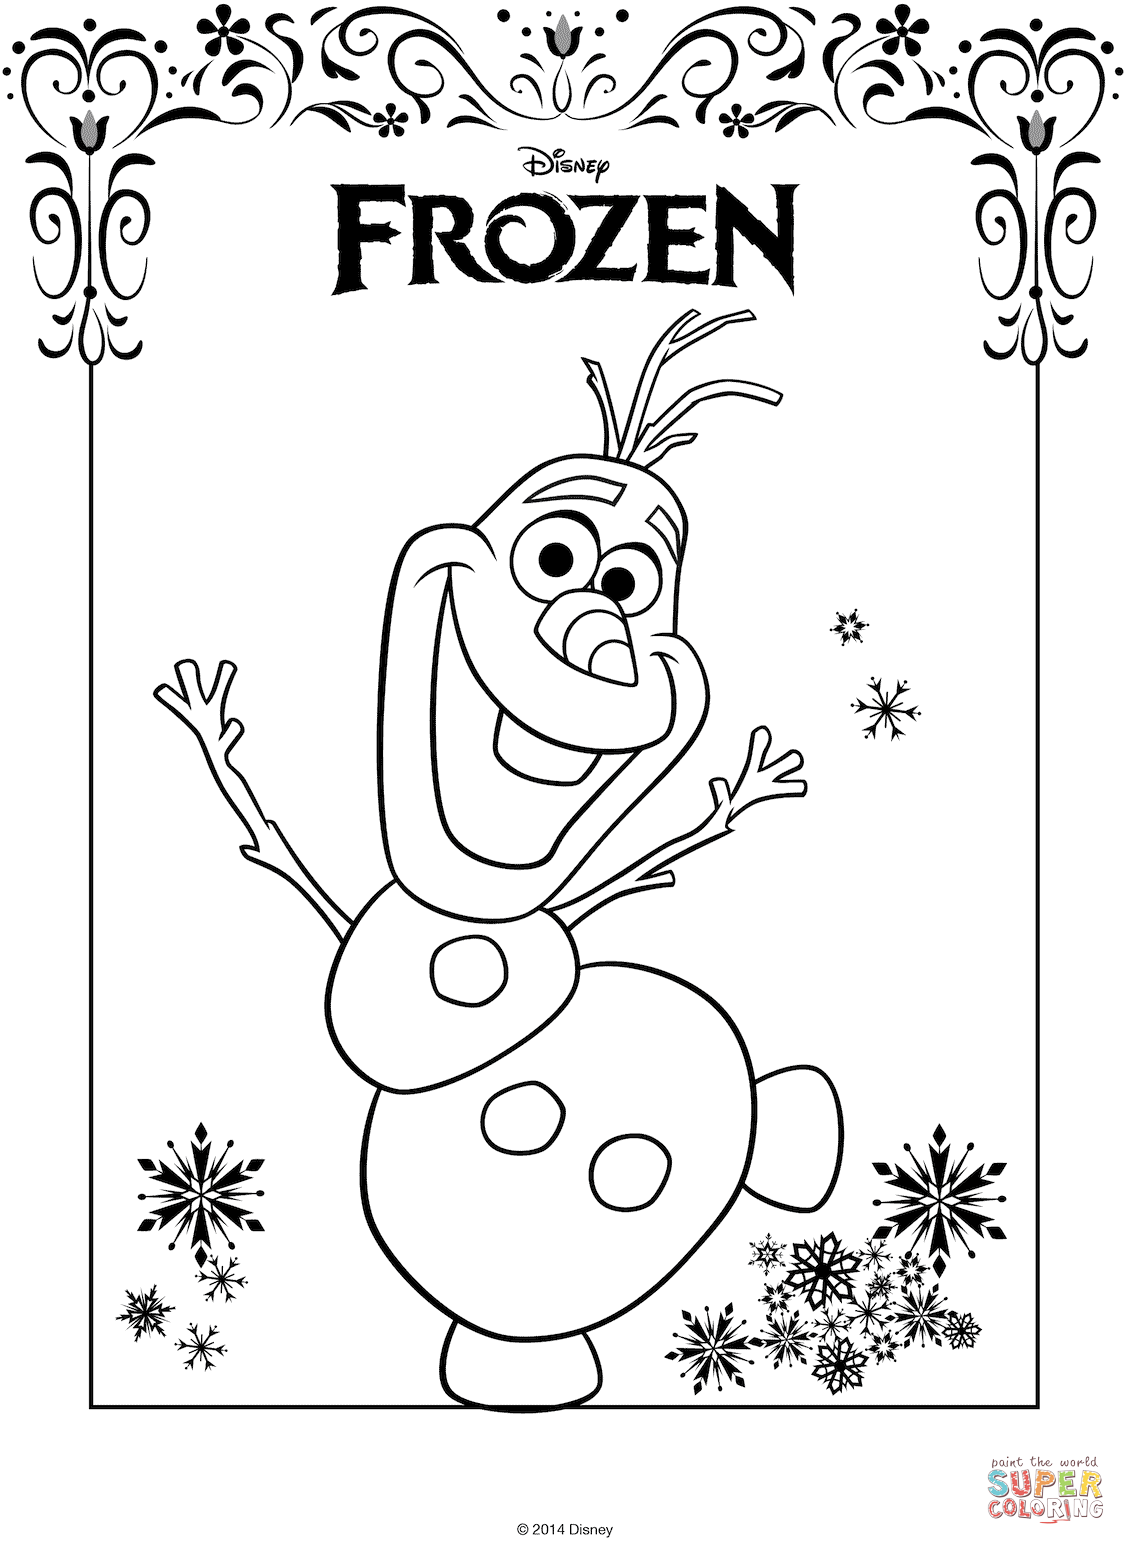 Kristoff From Frozen Coloring Page Free Printable Coloring Pages